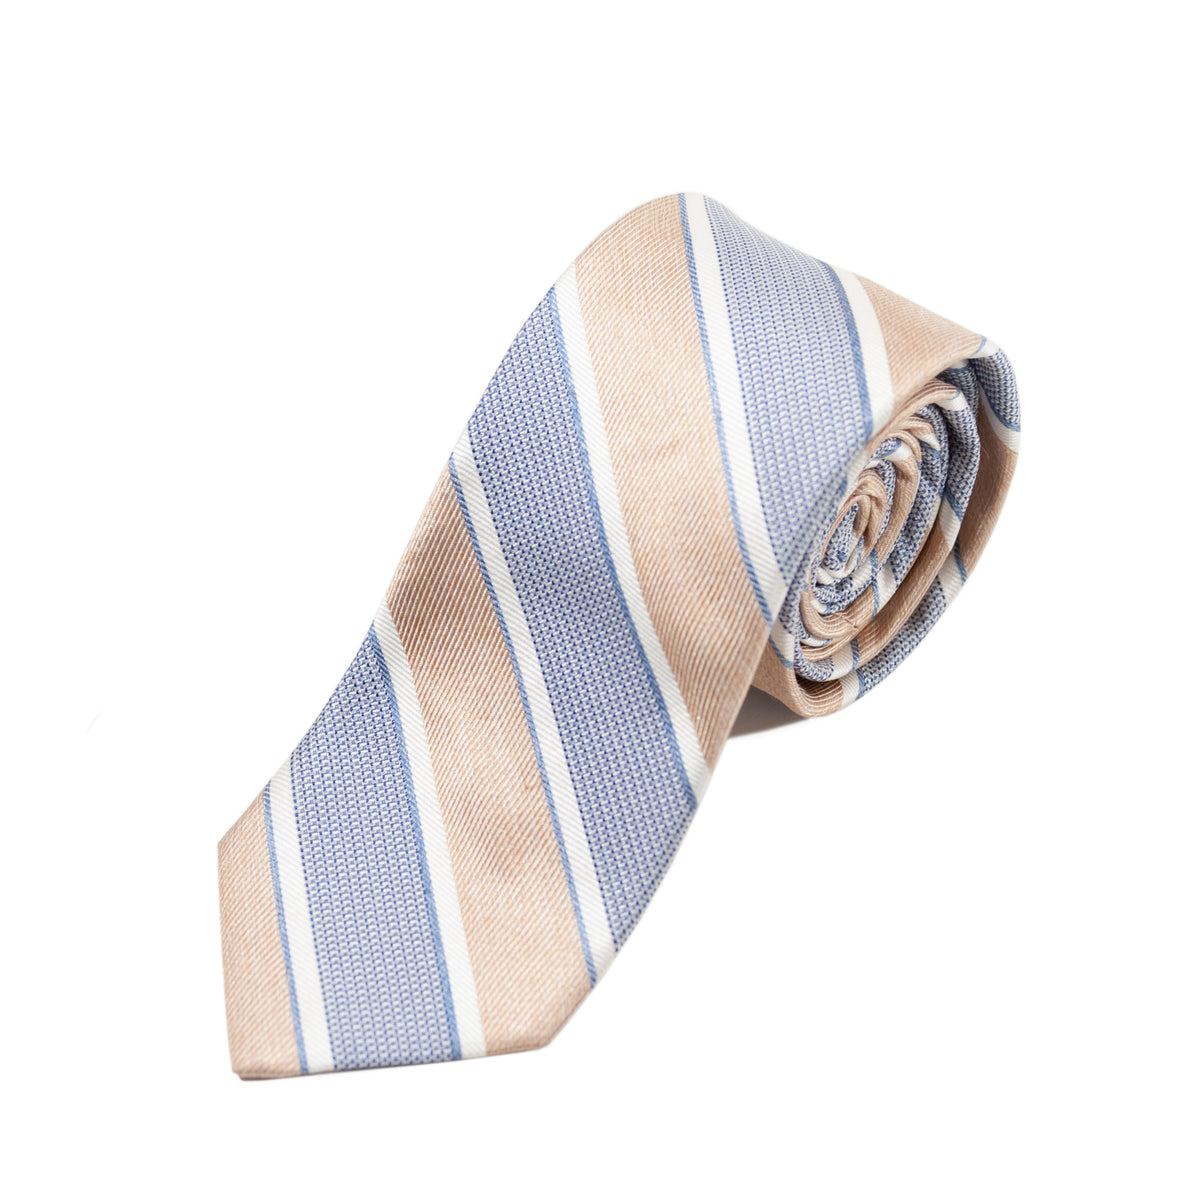 Faconnable Brown Striped Silk Tie for Luxmrkt.com Menswear Consignment Edmonton